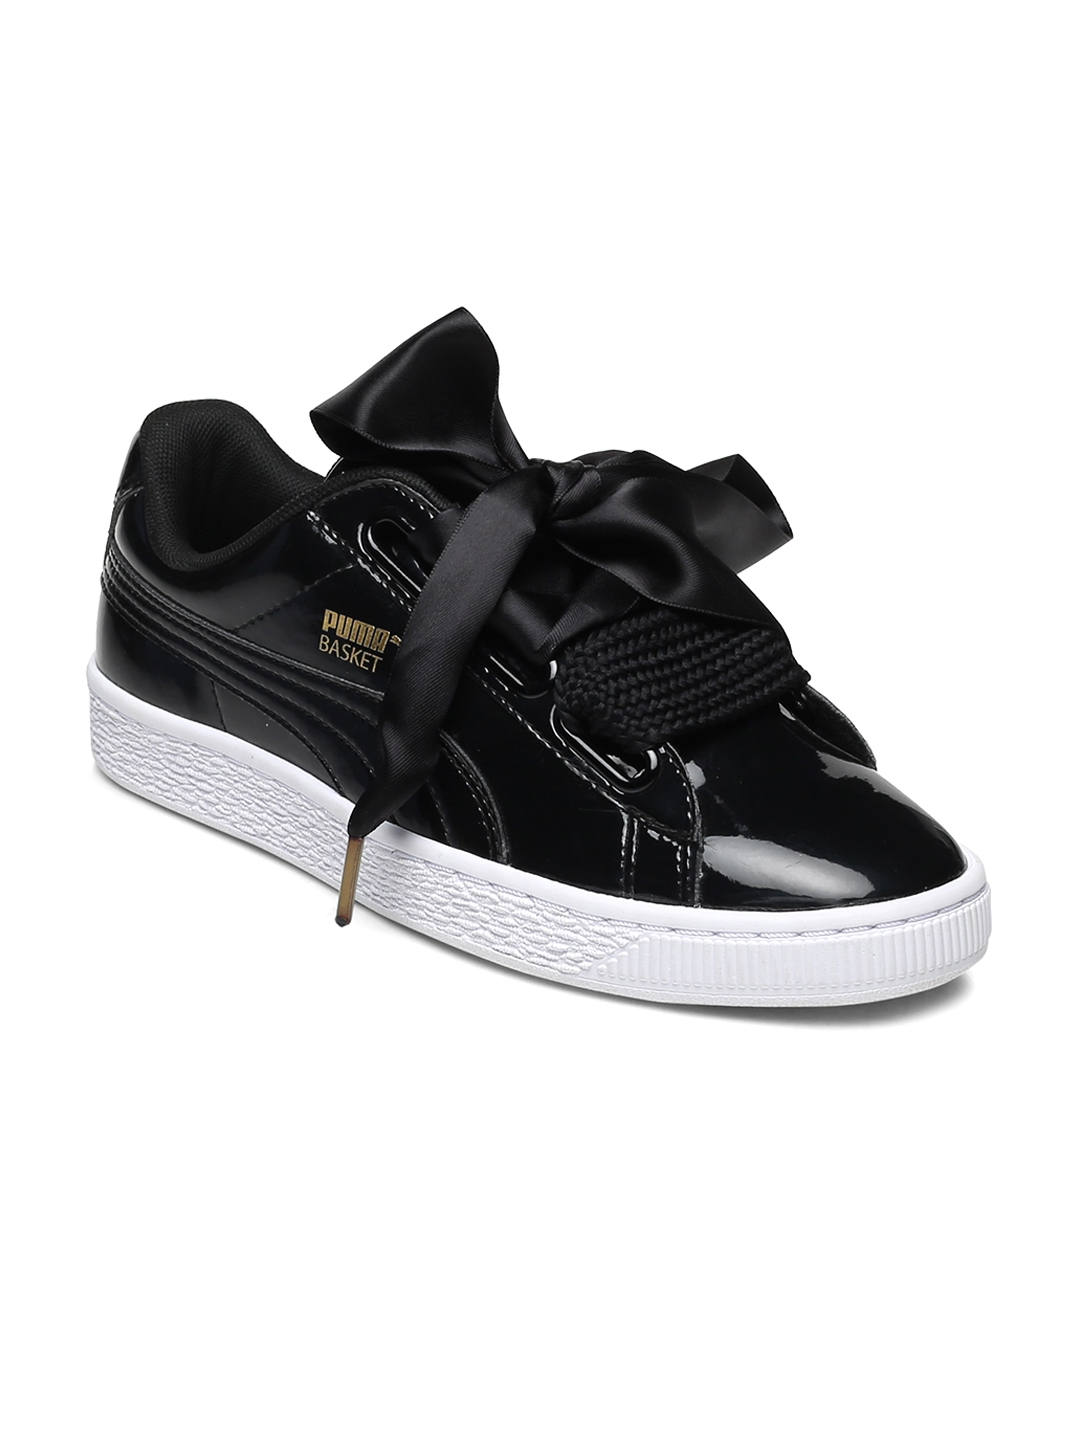 b75df8bb326eb4 Buy Puma Women Black Solid Regular Basket Heart Sneakers - Casual ...